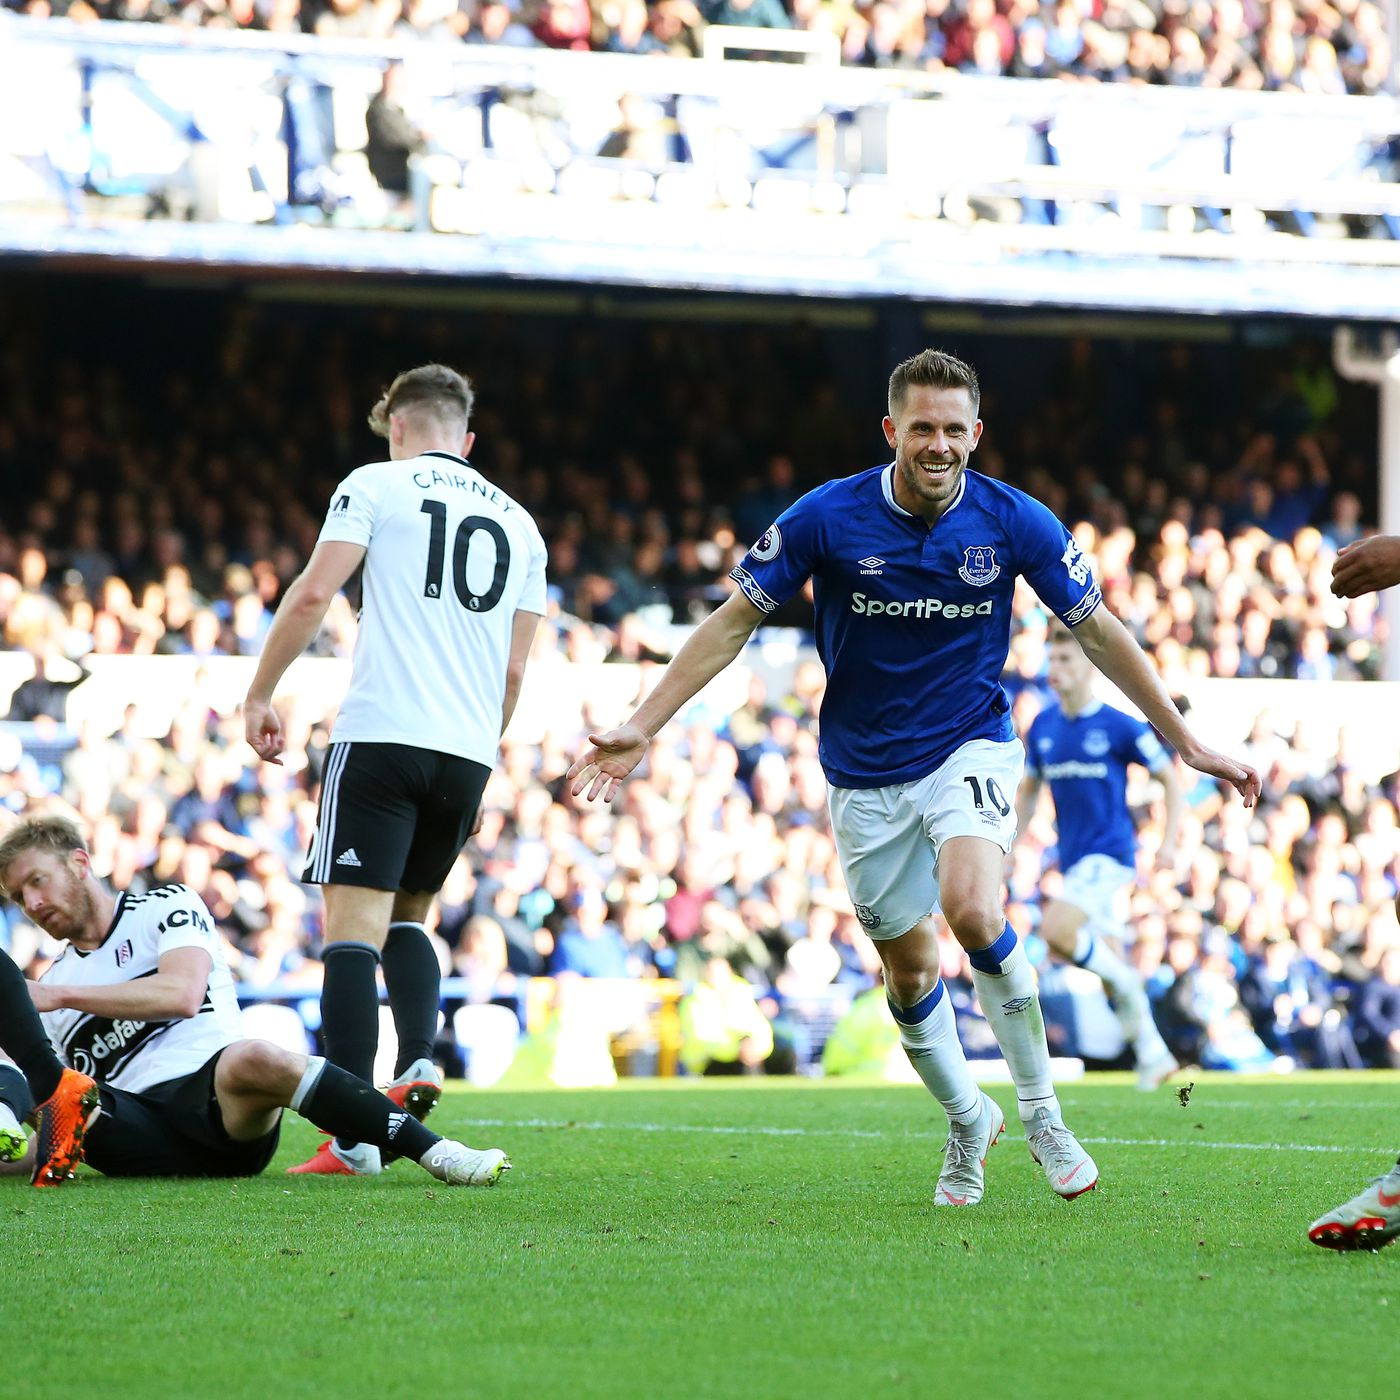 Predictions and preview for Everton at Fulham - Royal Blue Mersey